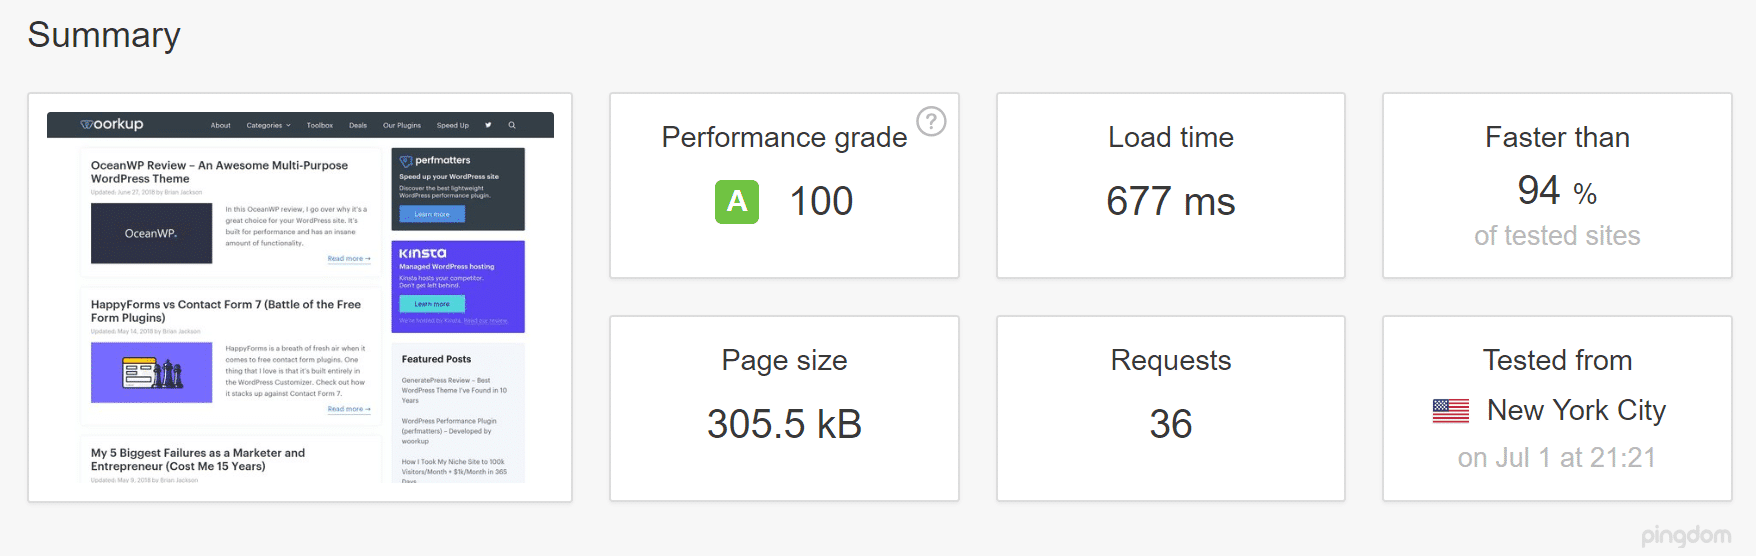 7 Best Wordpress Caching Plugins To Lower Page Load Time And Ttfb